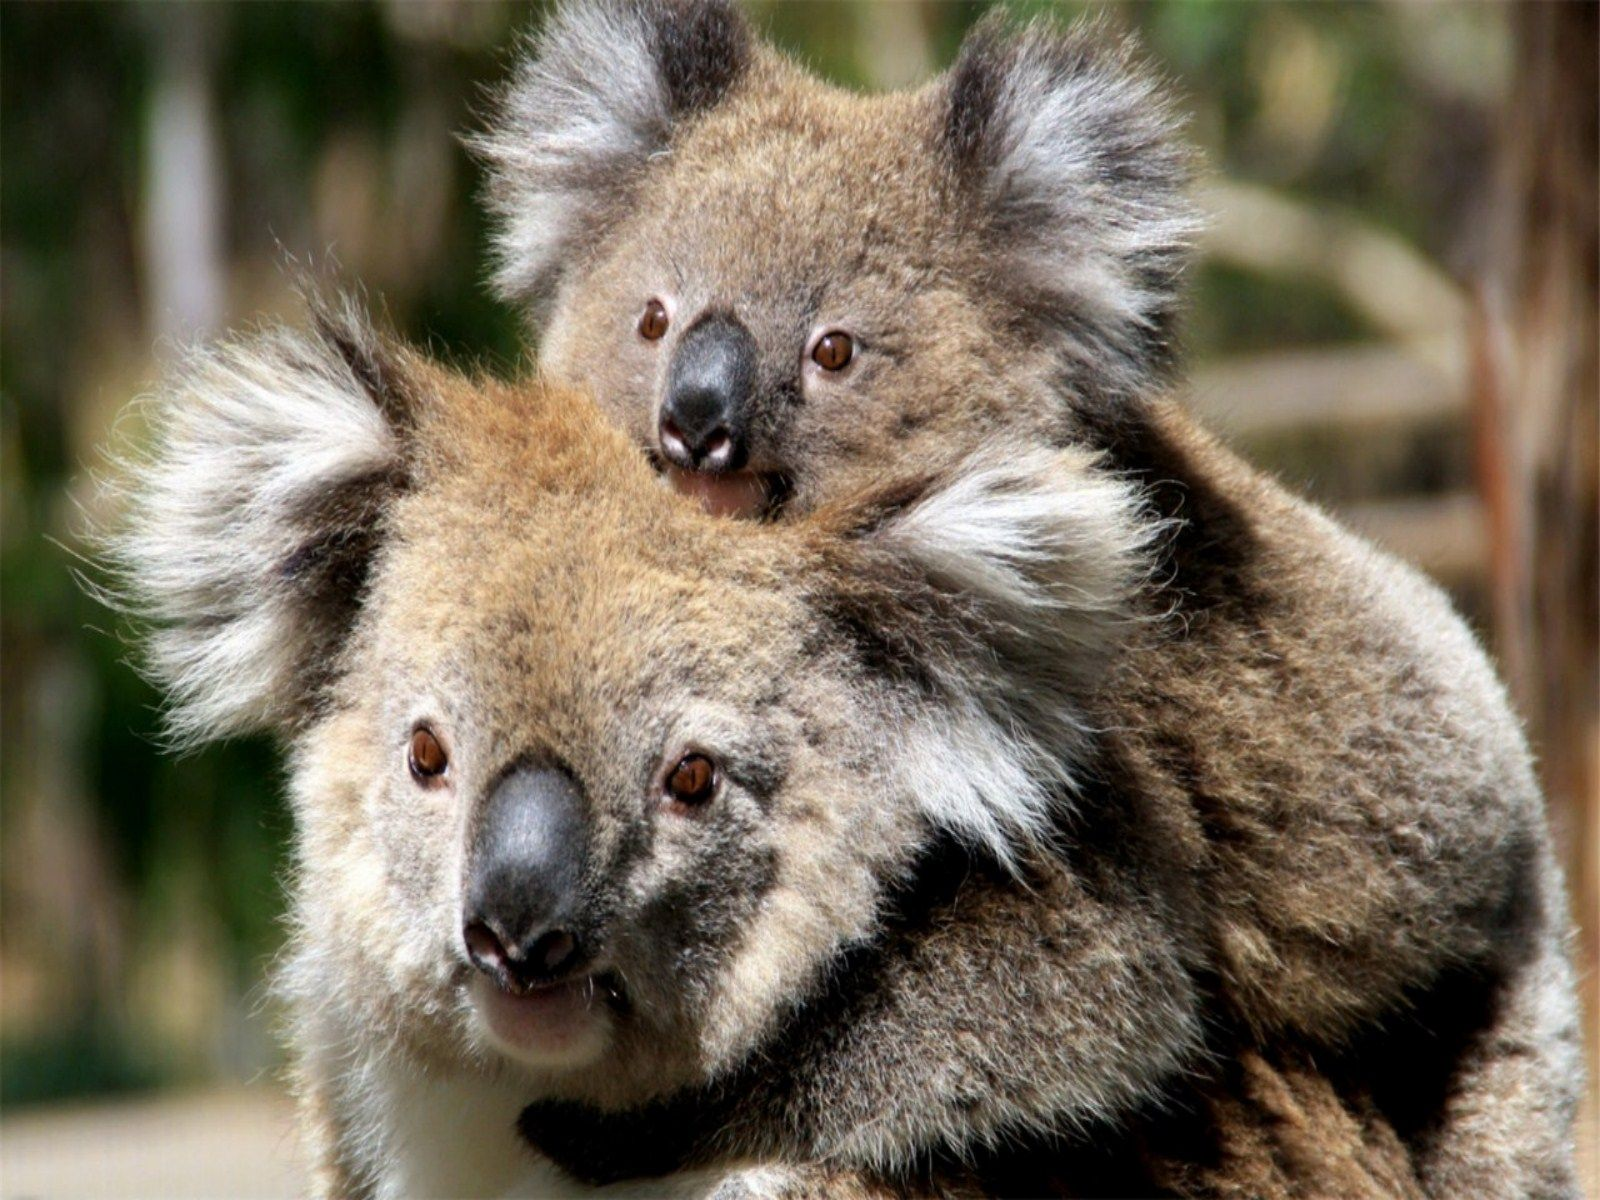 Koala Wall Paper Koala Wallpapers Hd Wallpapers Inn Mother And Baby Animals Baby Animals Baby Animals Pictures